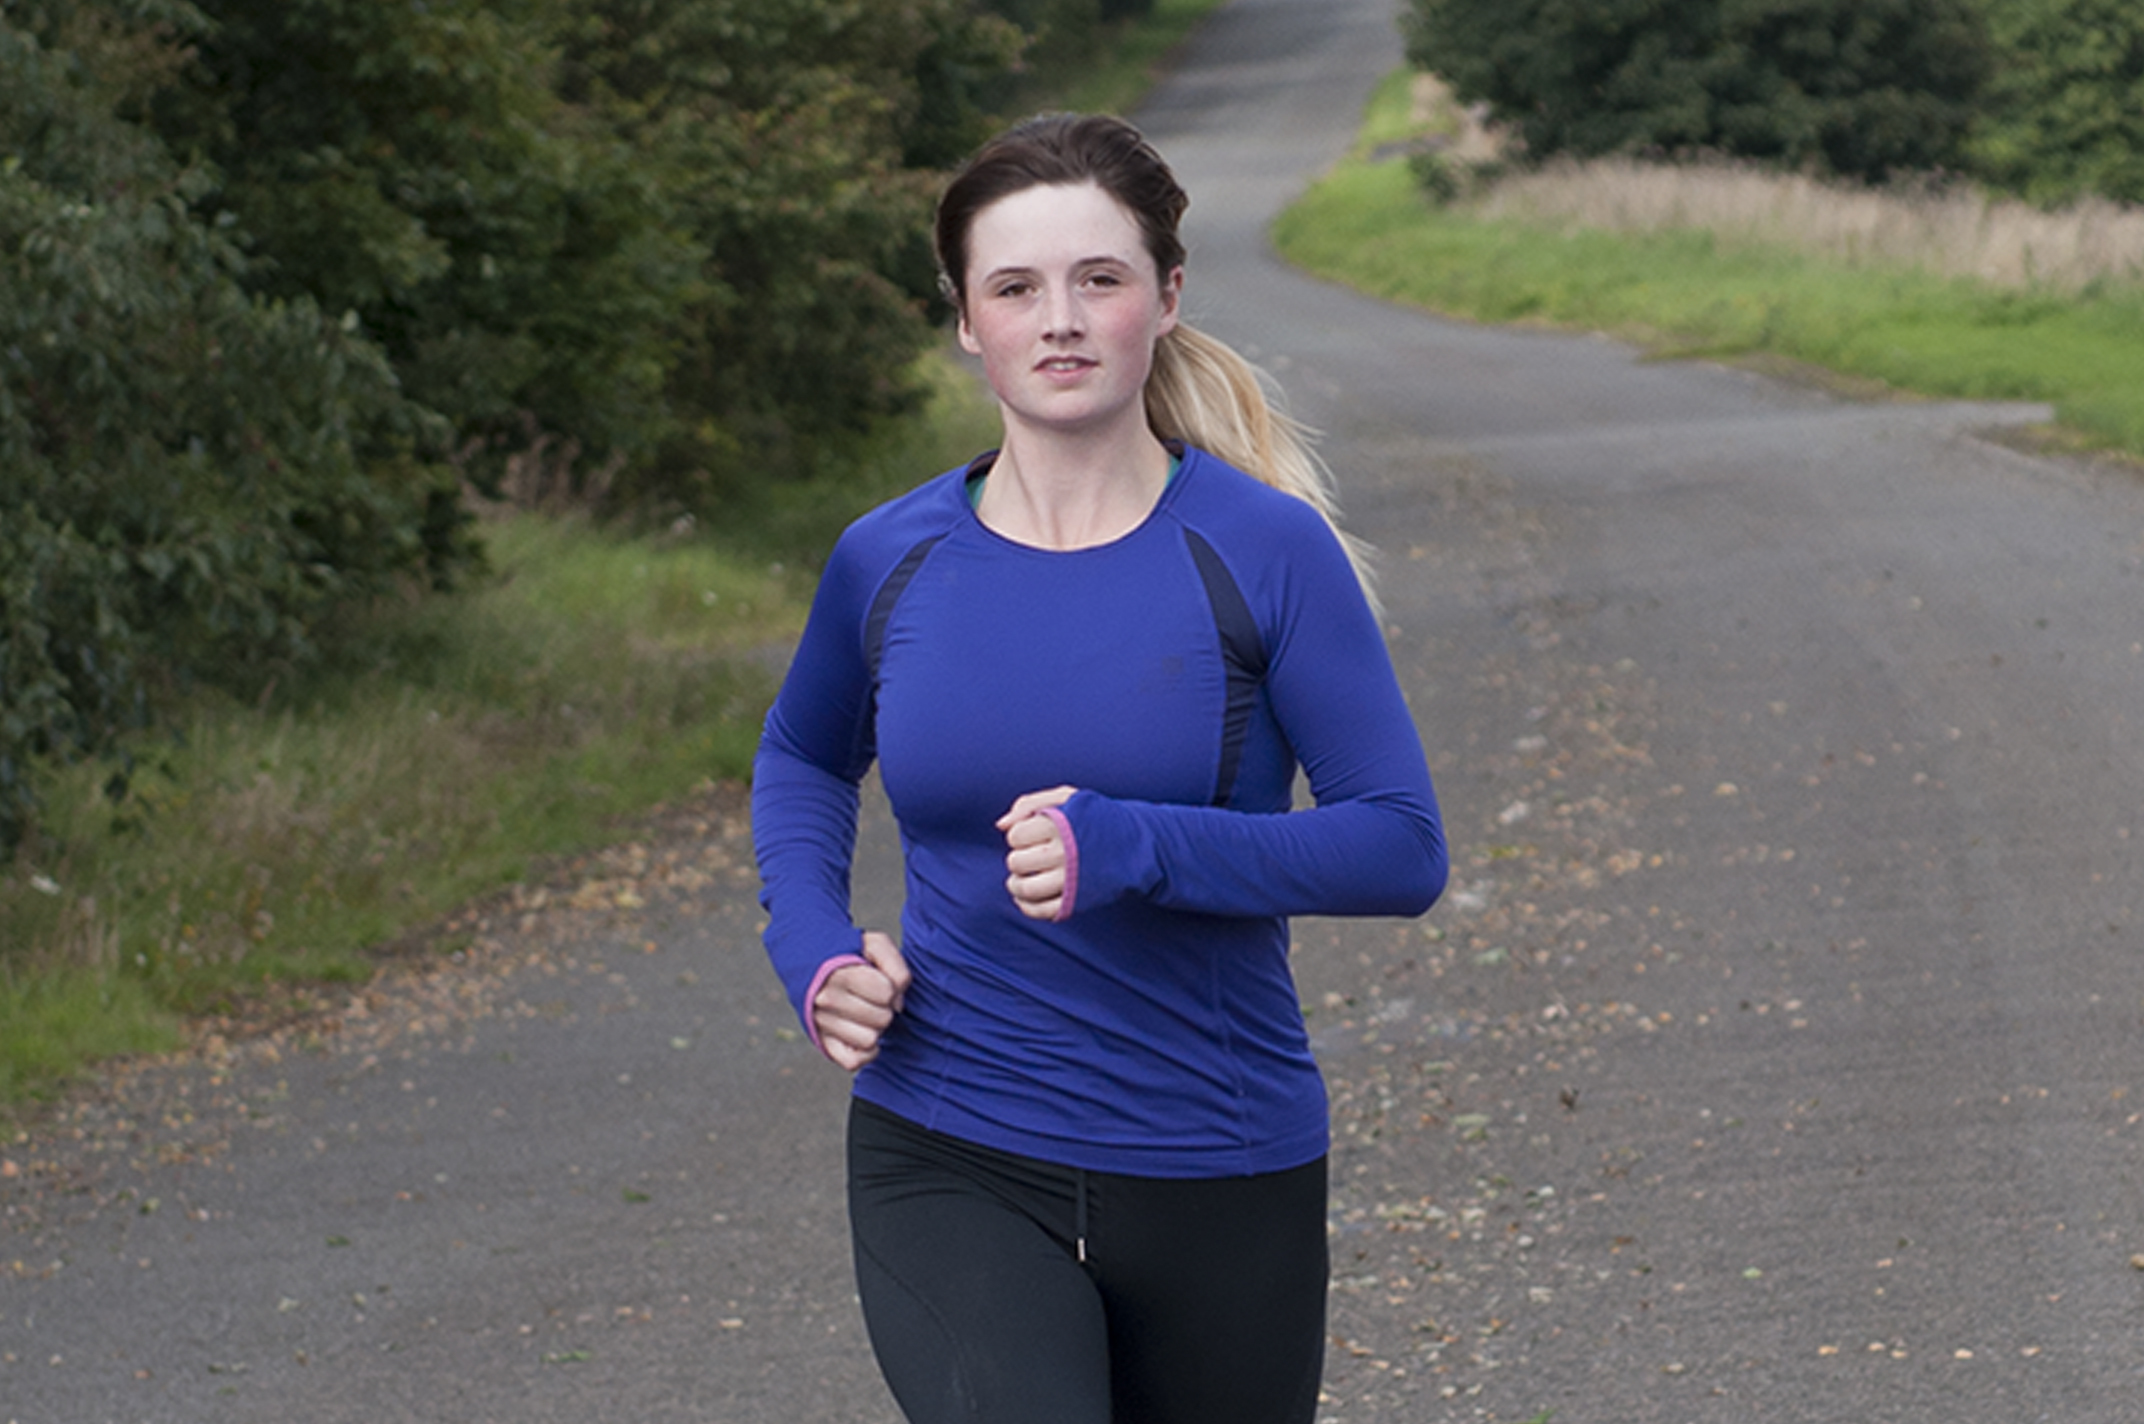 Shauney will take on one the world's toughest marathons in November